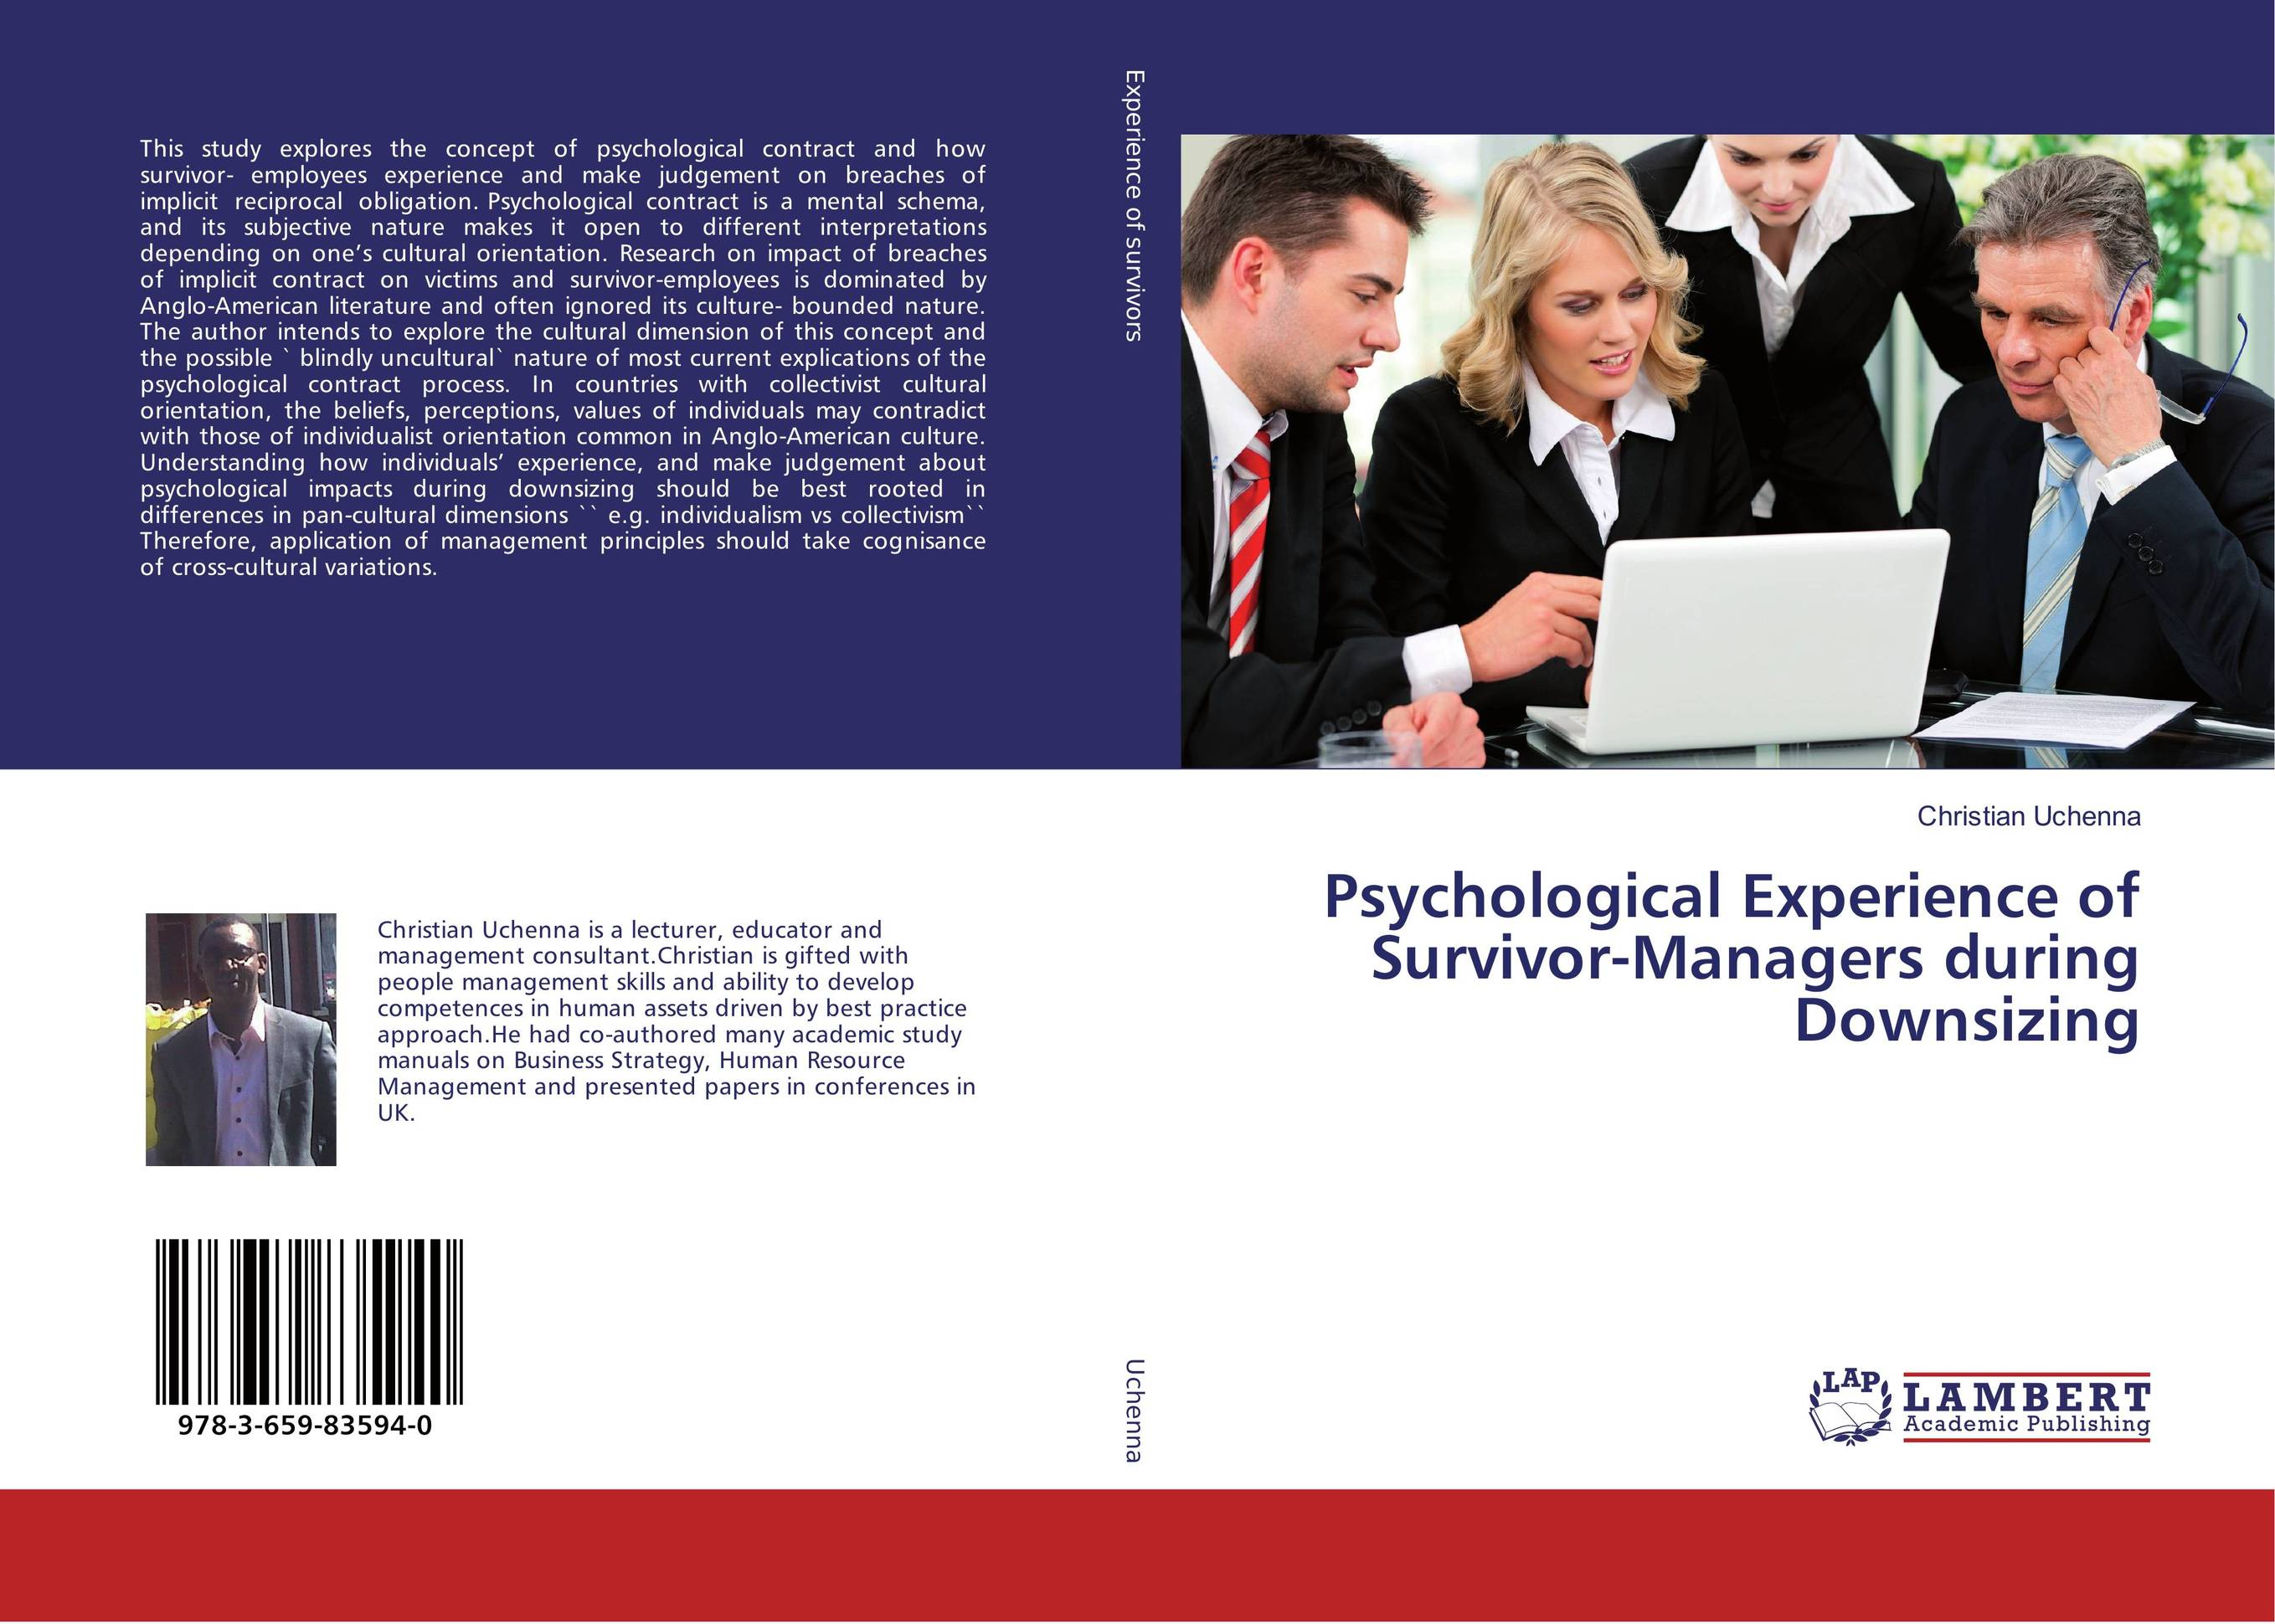 Psychological Experience of Survivor-Managers during Downsizing khaled el sayed hotel franchise agreements and the psychological contract